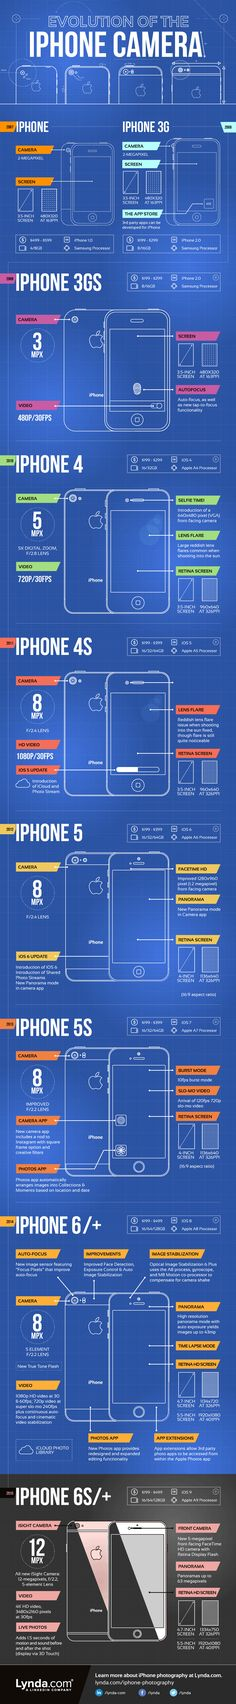 Evolution of the iPhone Camera #infographic #iPhone #MobileDevices #Technology